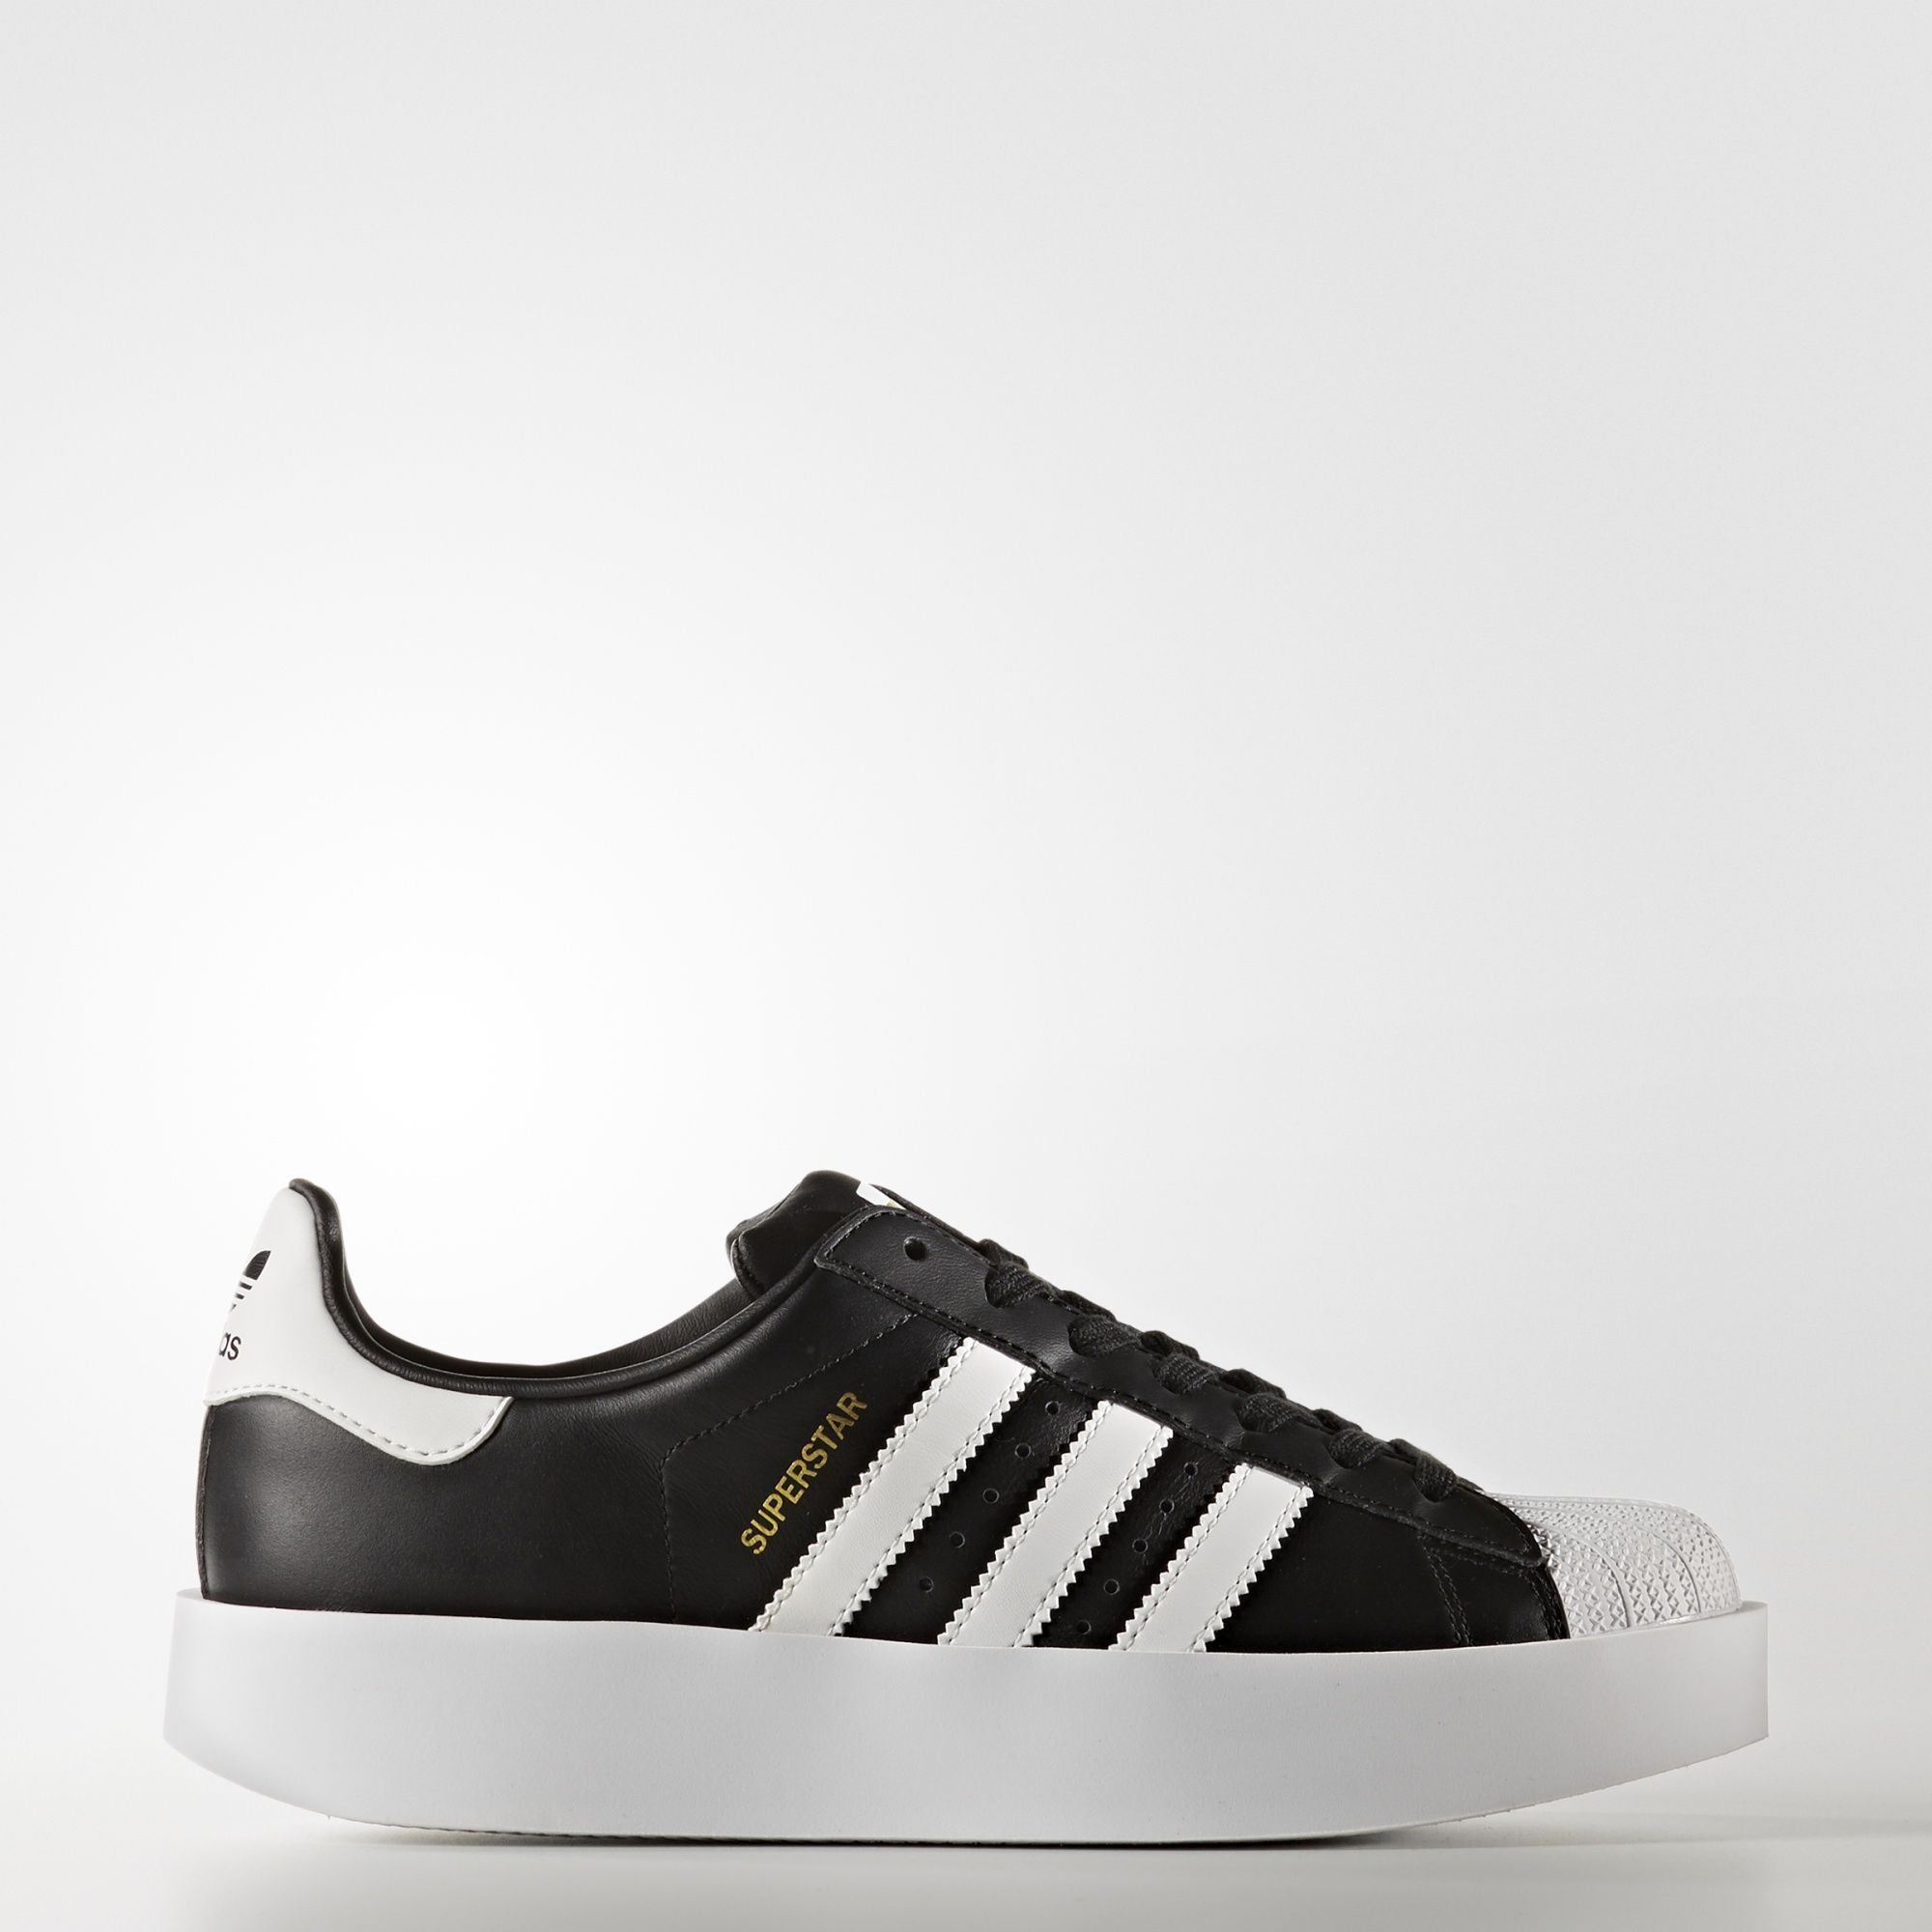 adidas - Superstar Bold Platform Shoes